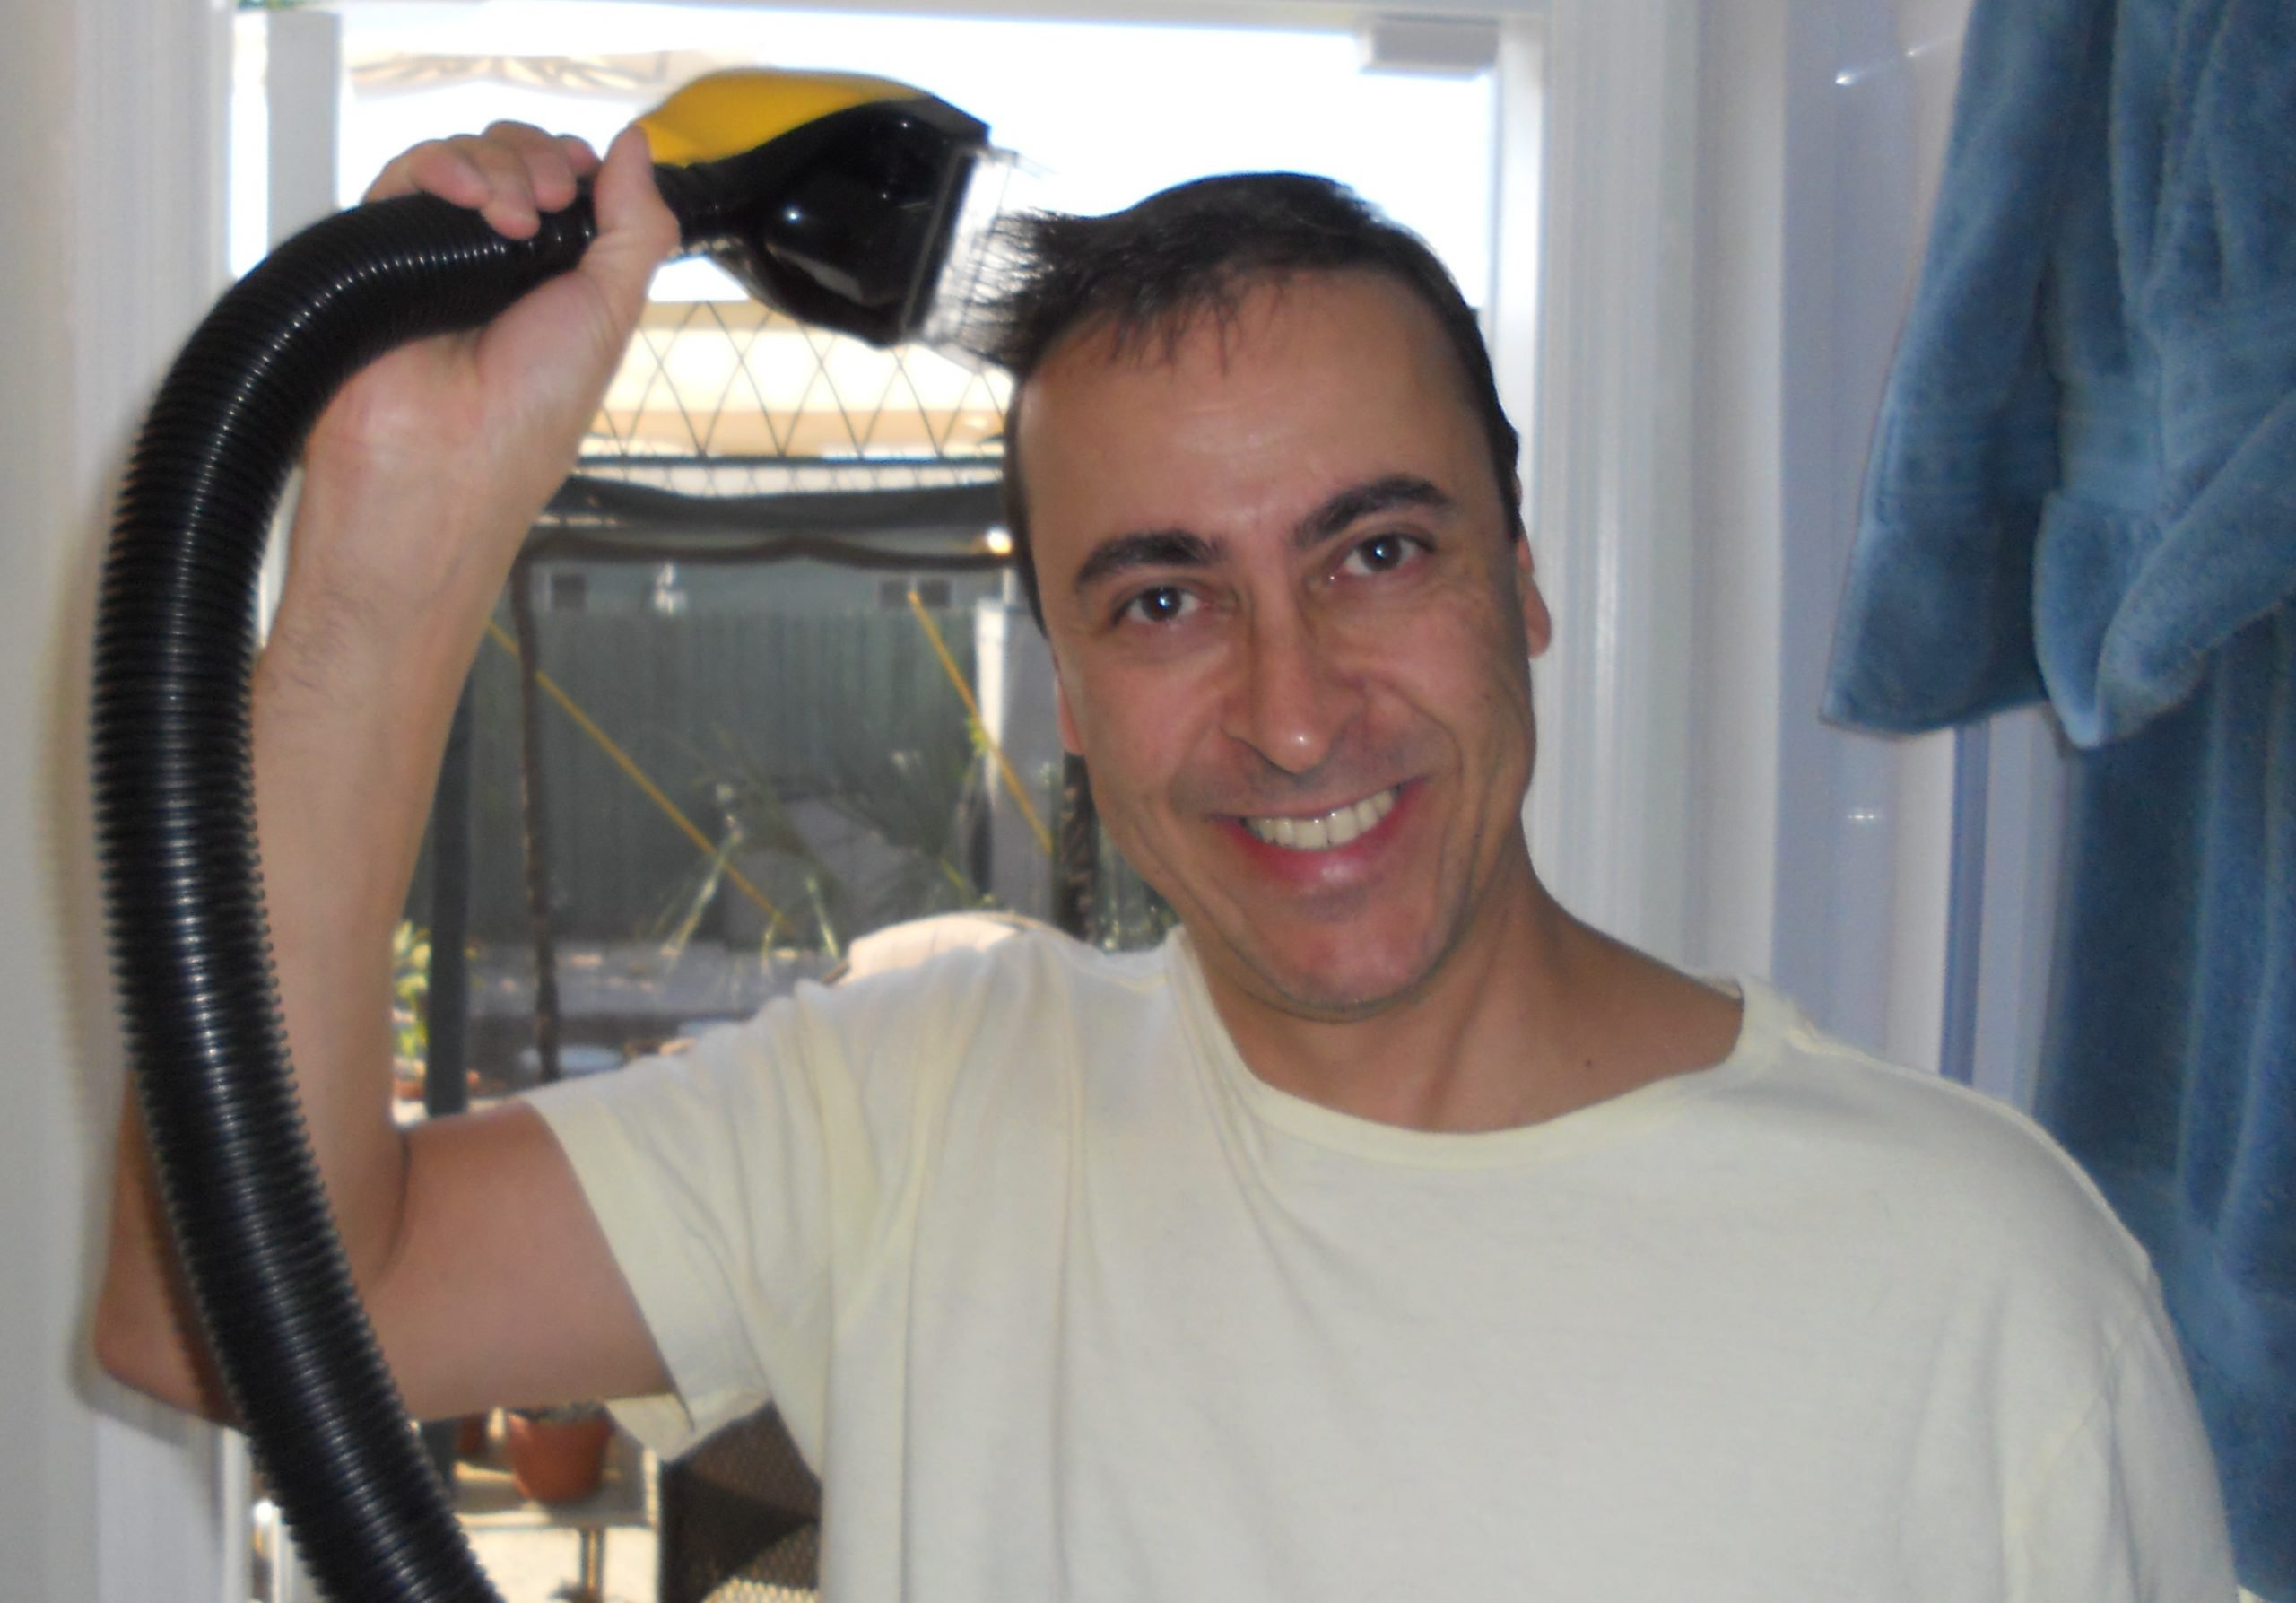 A man uses a Flowbee to cut his hair and clean up the mess